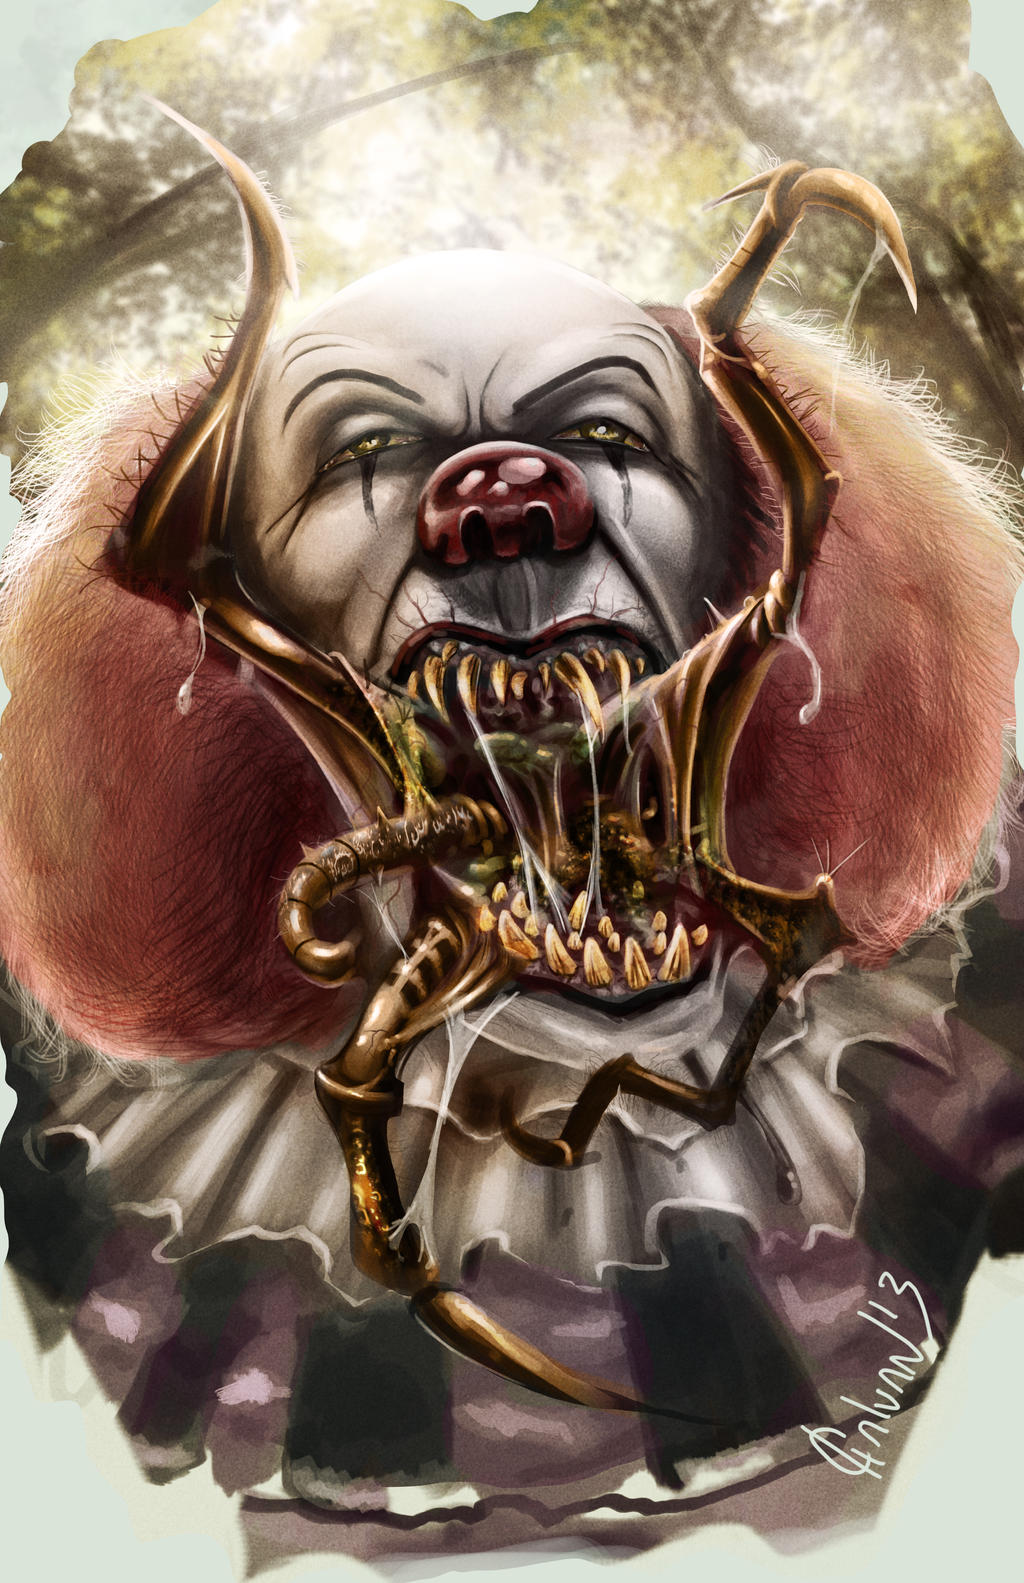 Pennywise by JoseGalvan on DeviantArt